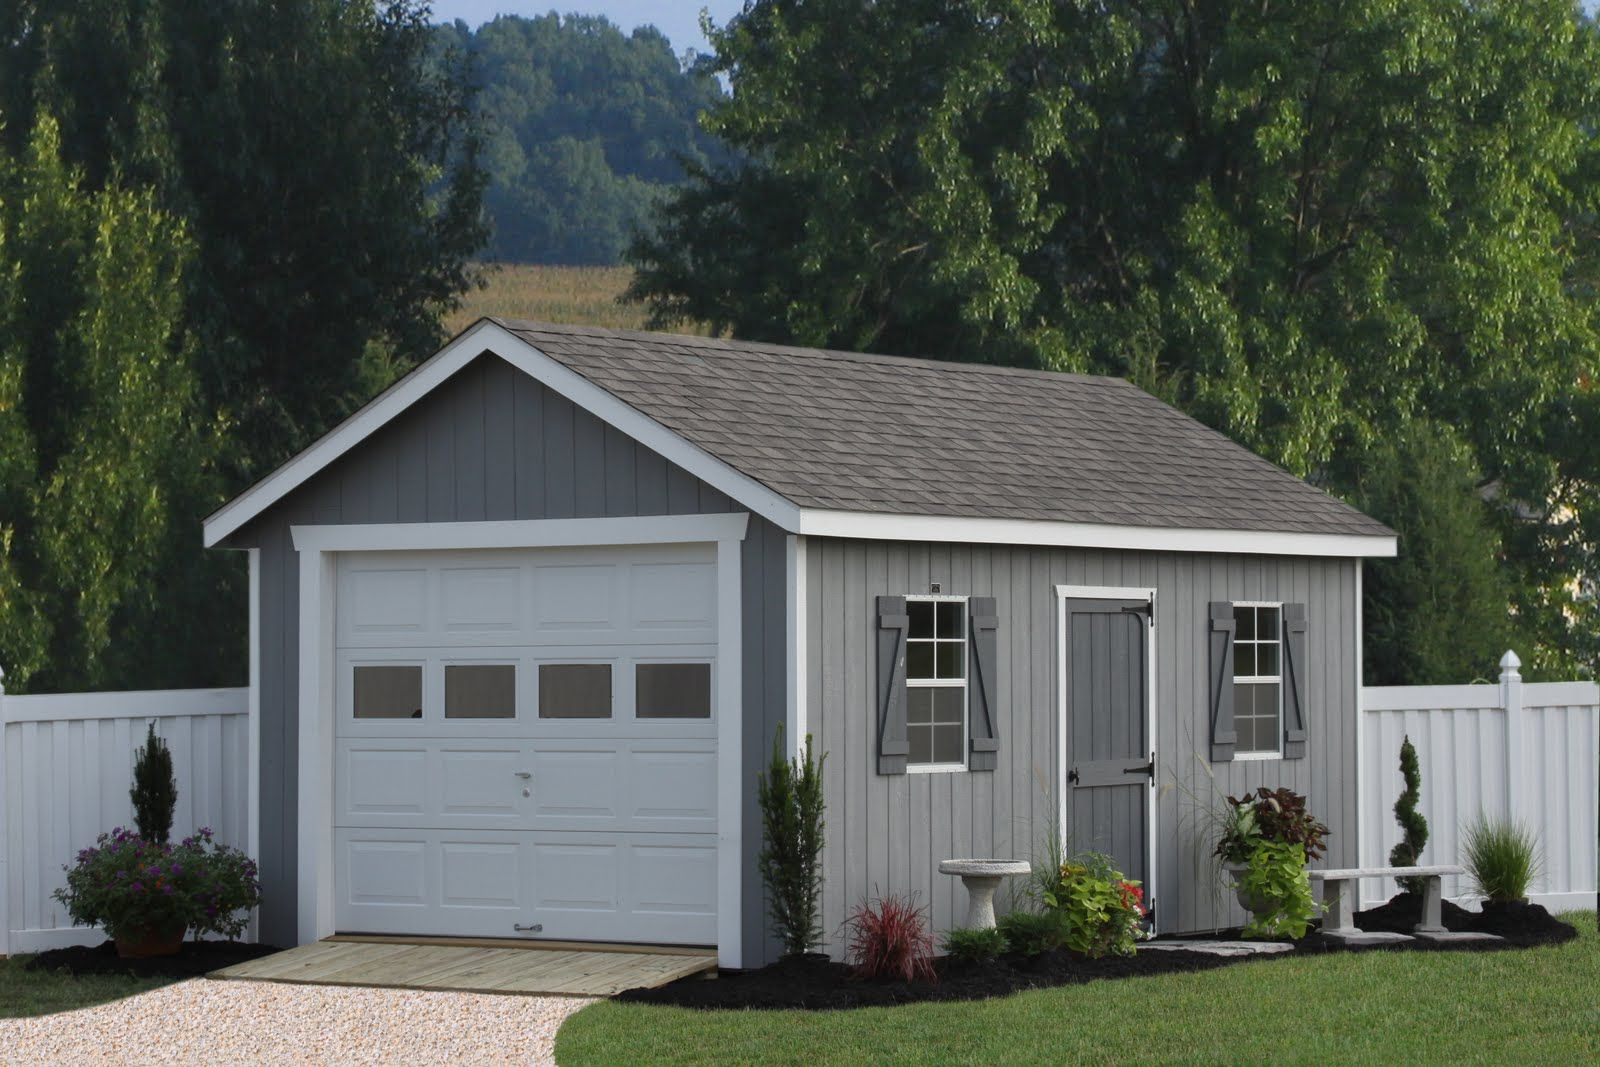 garages garage va youtube prefabricated vinyl watch prefab amish